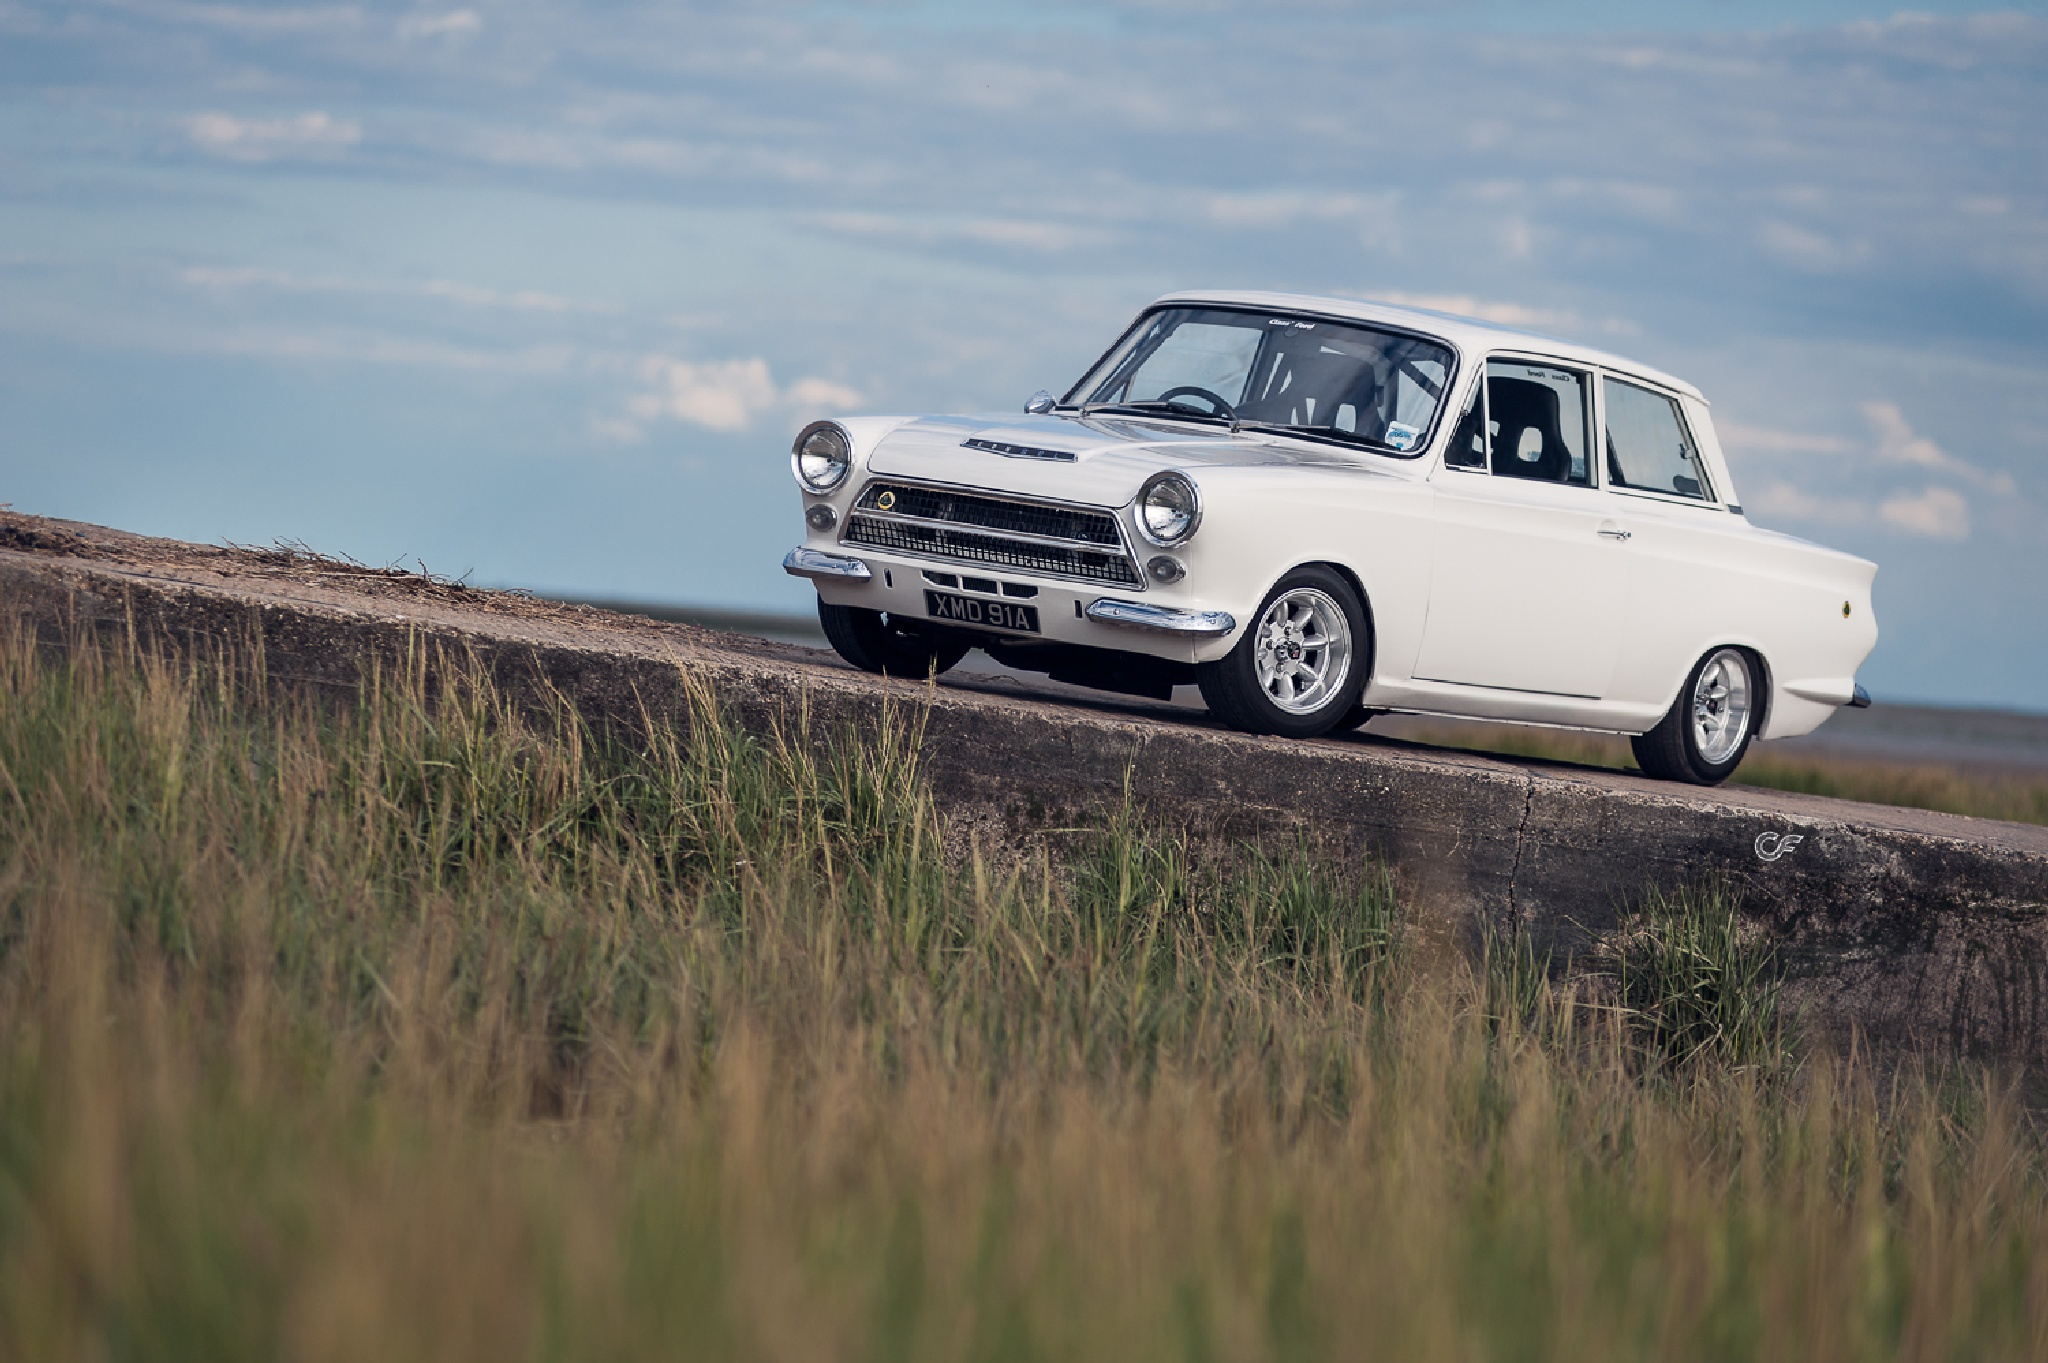 Ford Cortina by Chris Frosin